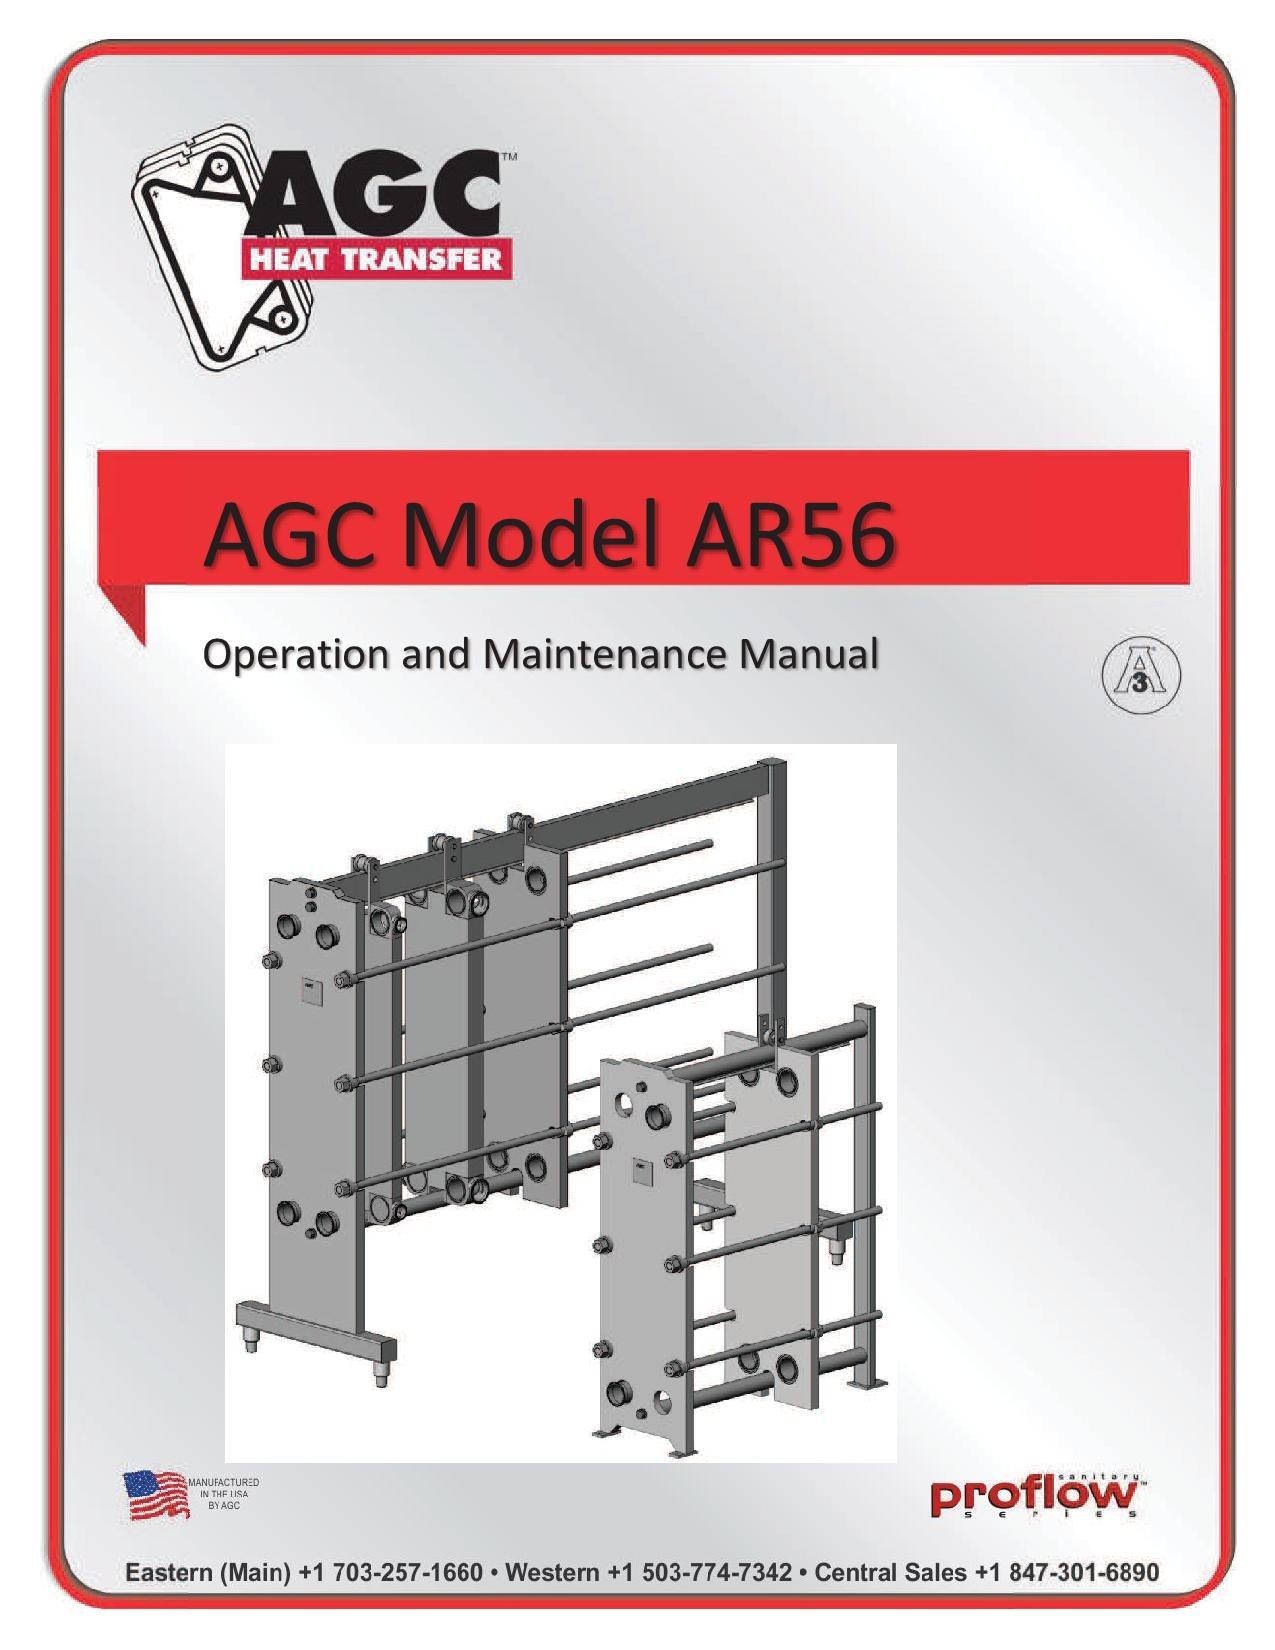 AGC Operating Manual AR56